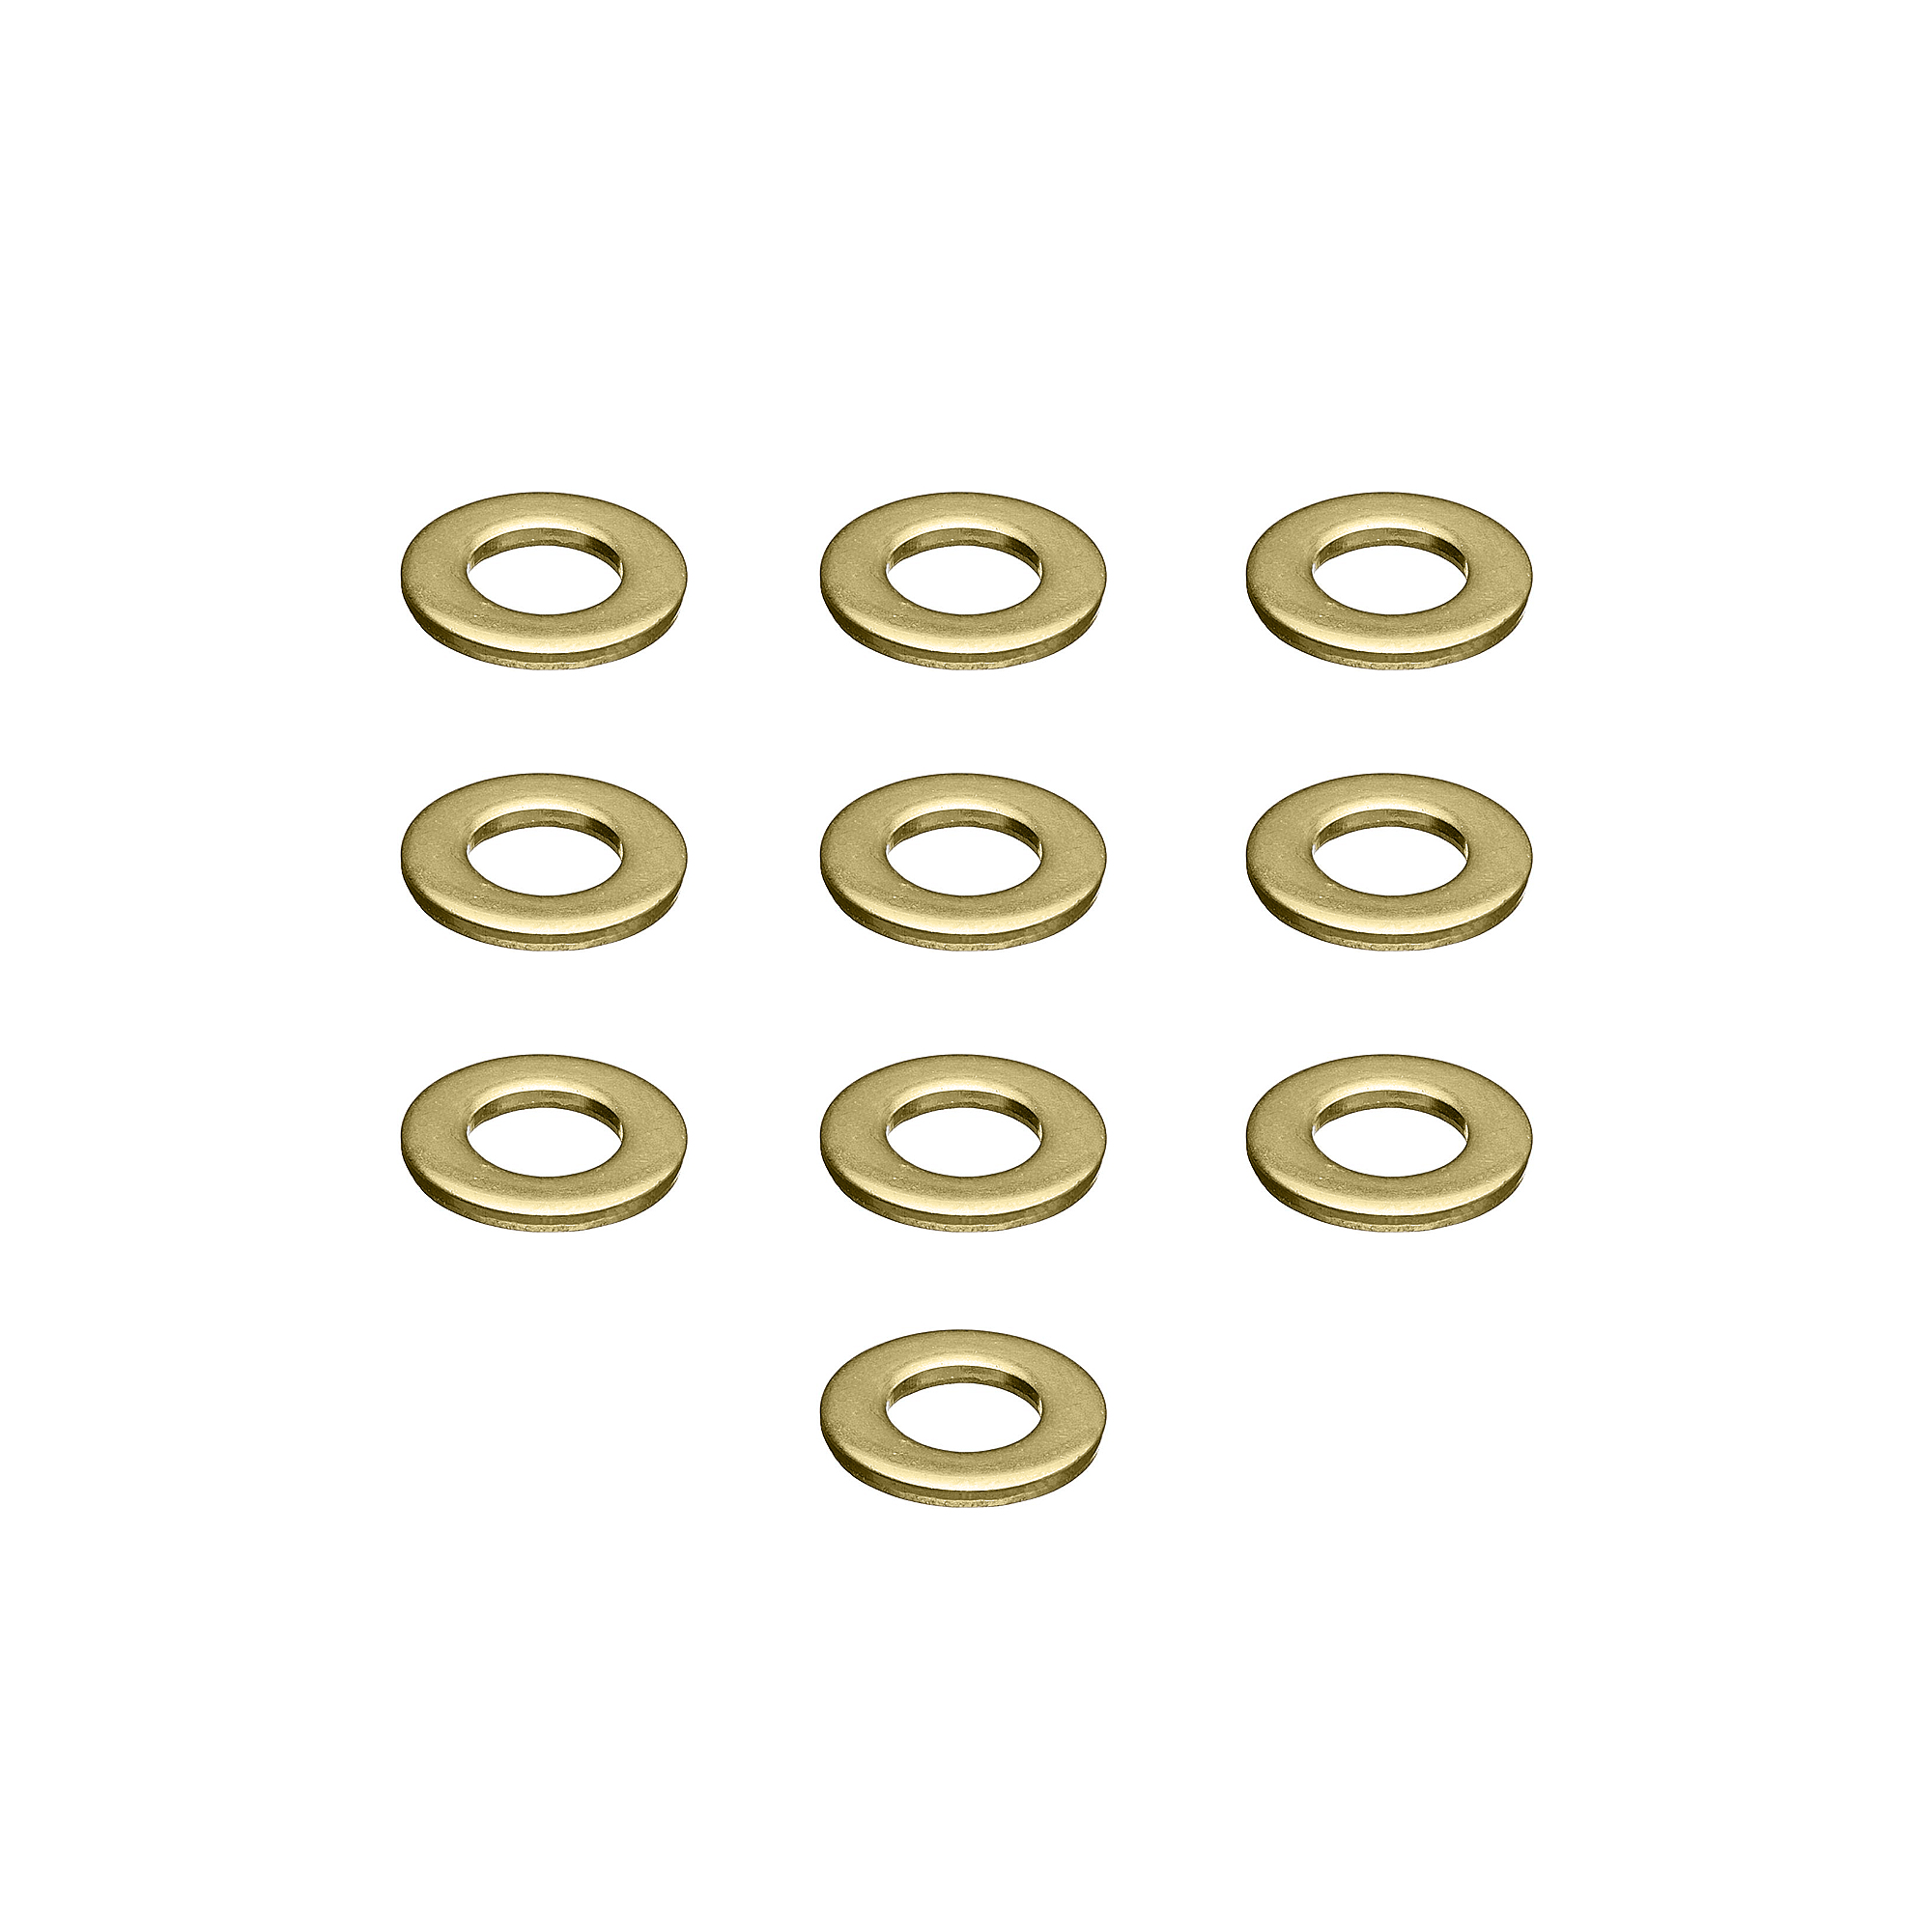 #10 Brass Washers - 10 Pack